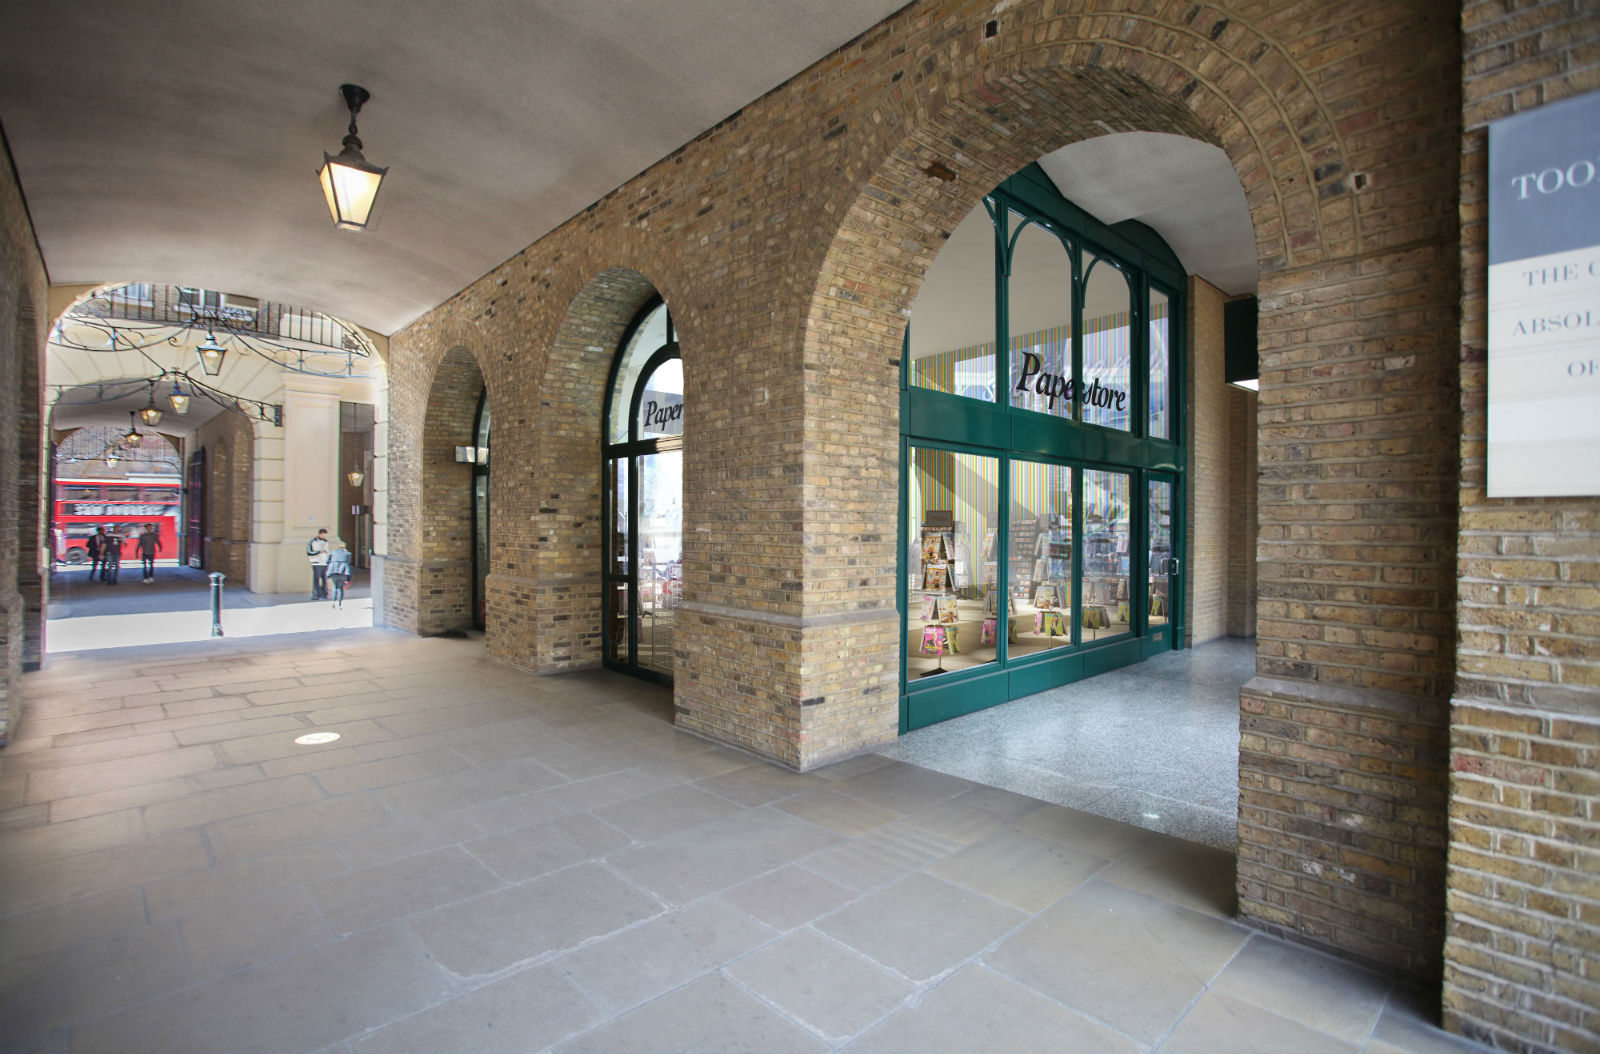 Commercial Property for Rent in London Bridge - 12 Hays Galleria, London SE1 2HD - Colliers ...